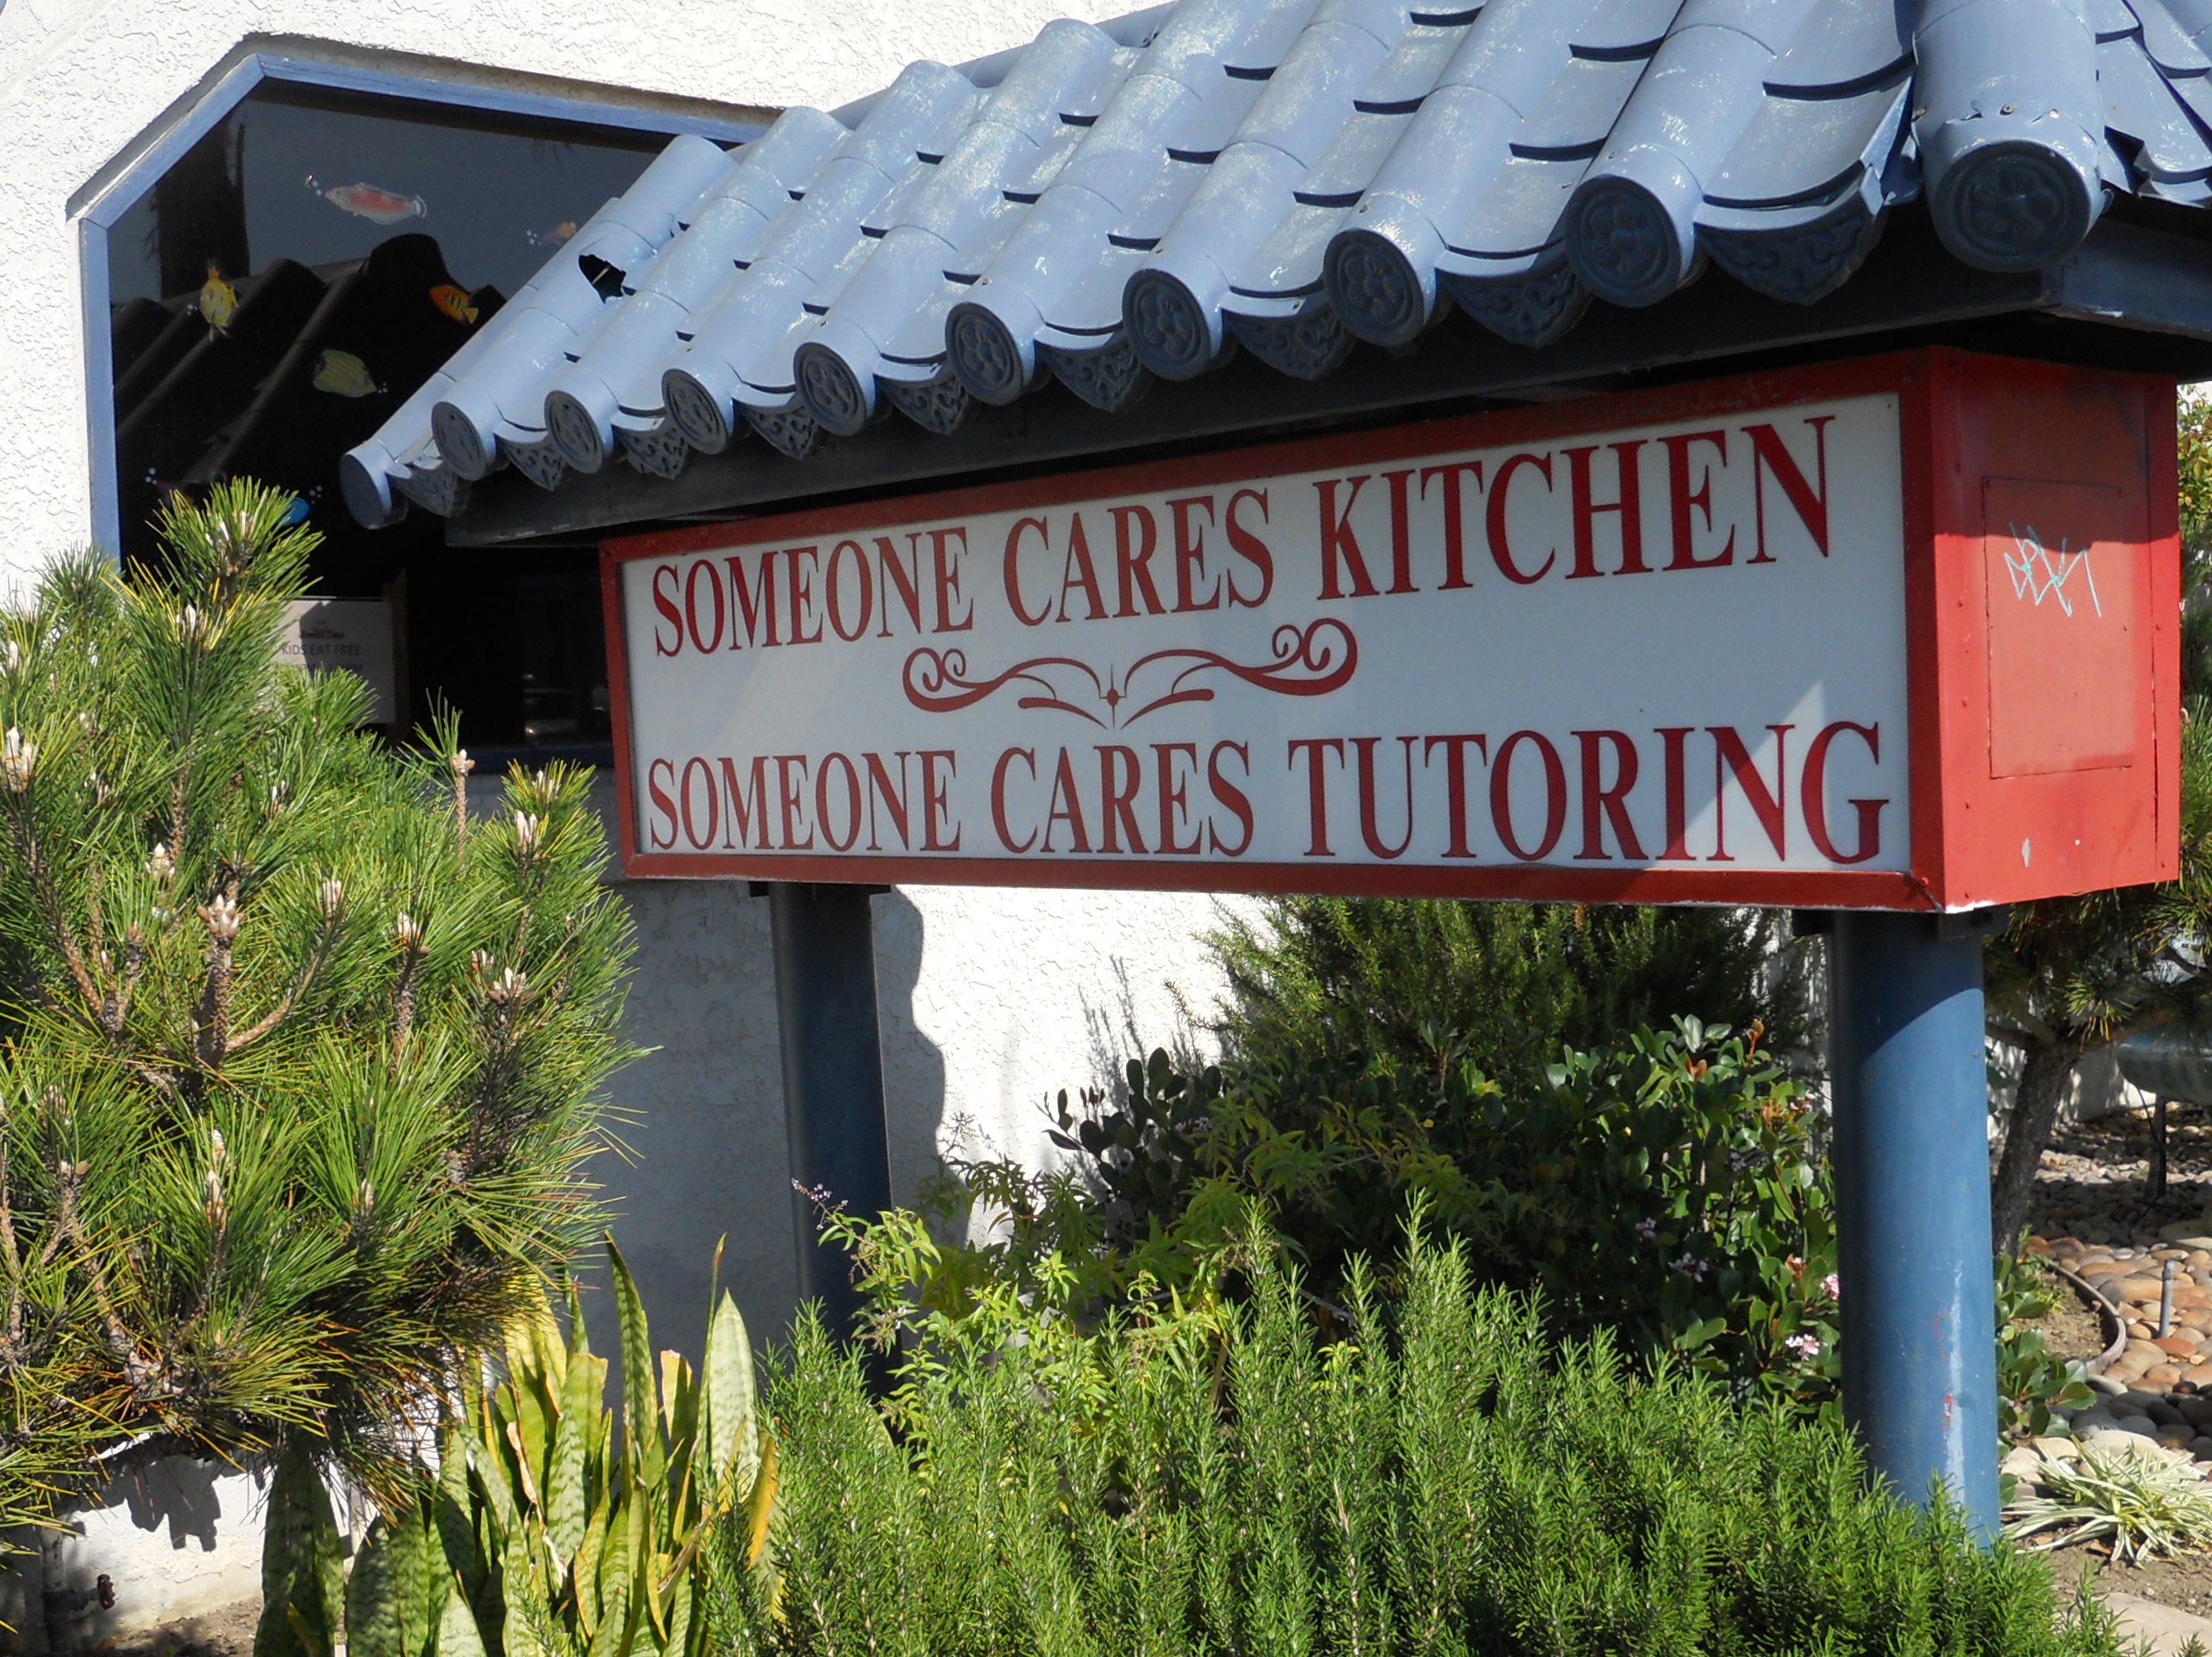 innovative results selects someone cares soup kitchen as first non